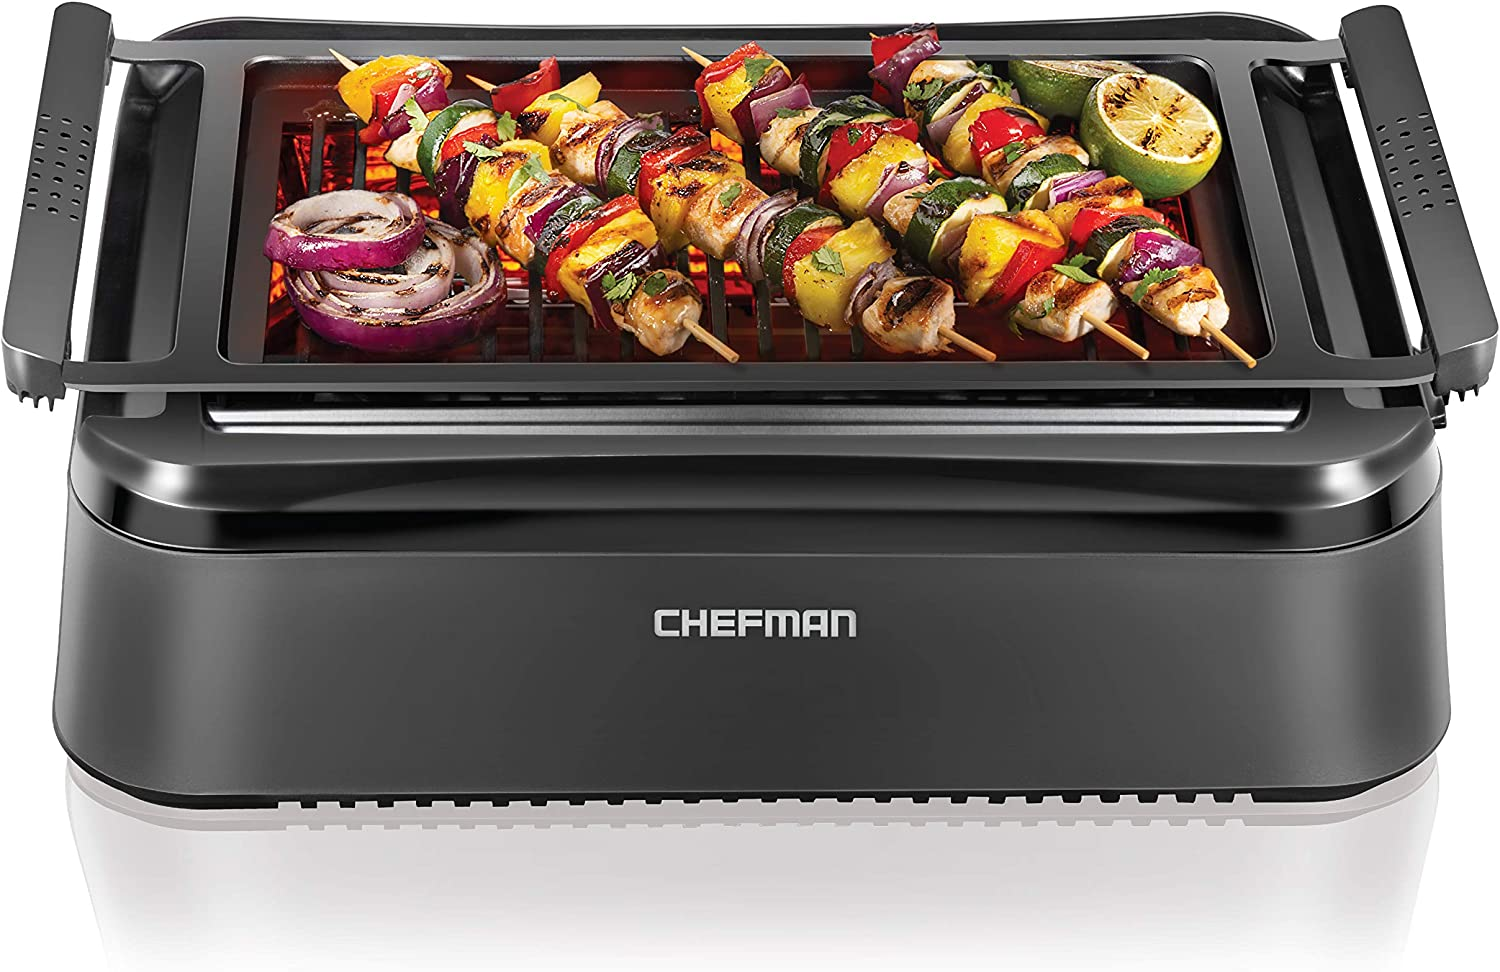 Best infrared grill-Best temperature: Chefman Electric Smokeless infrared grill